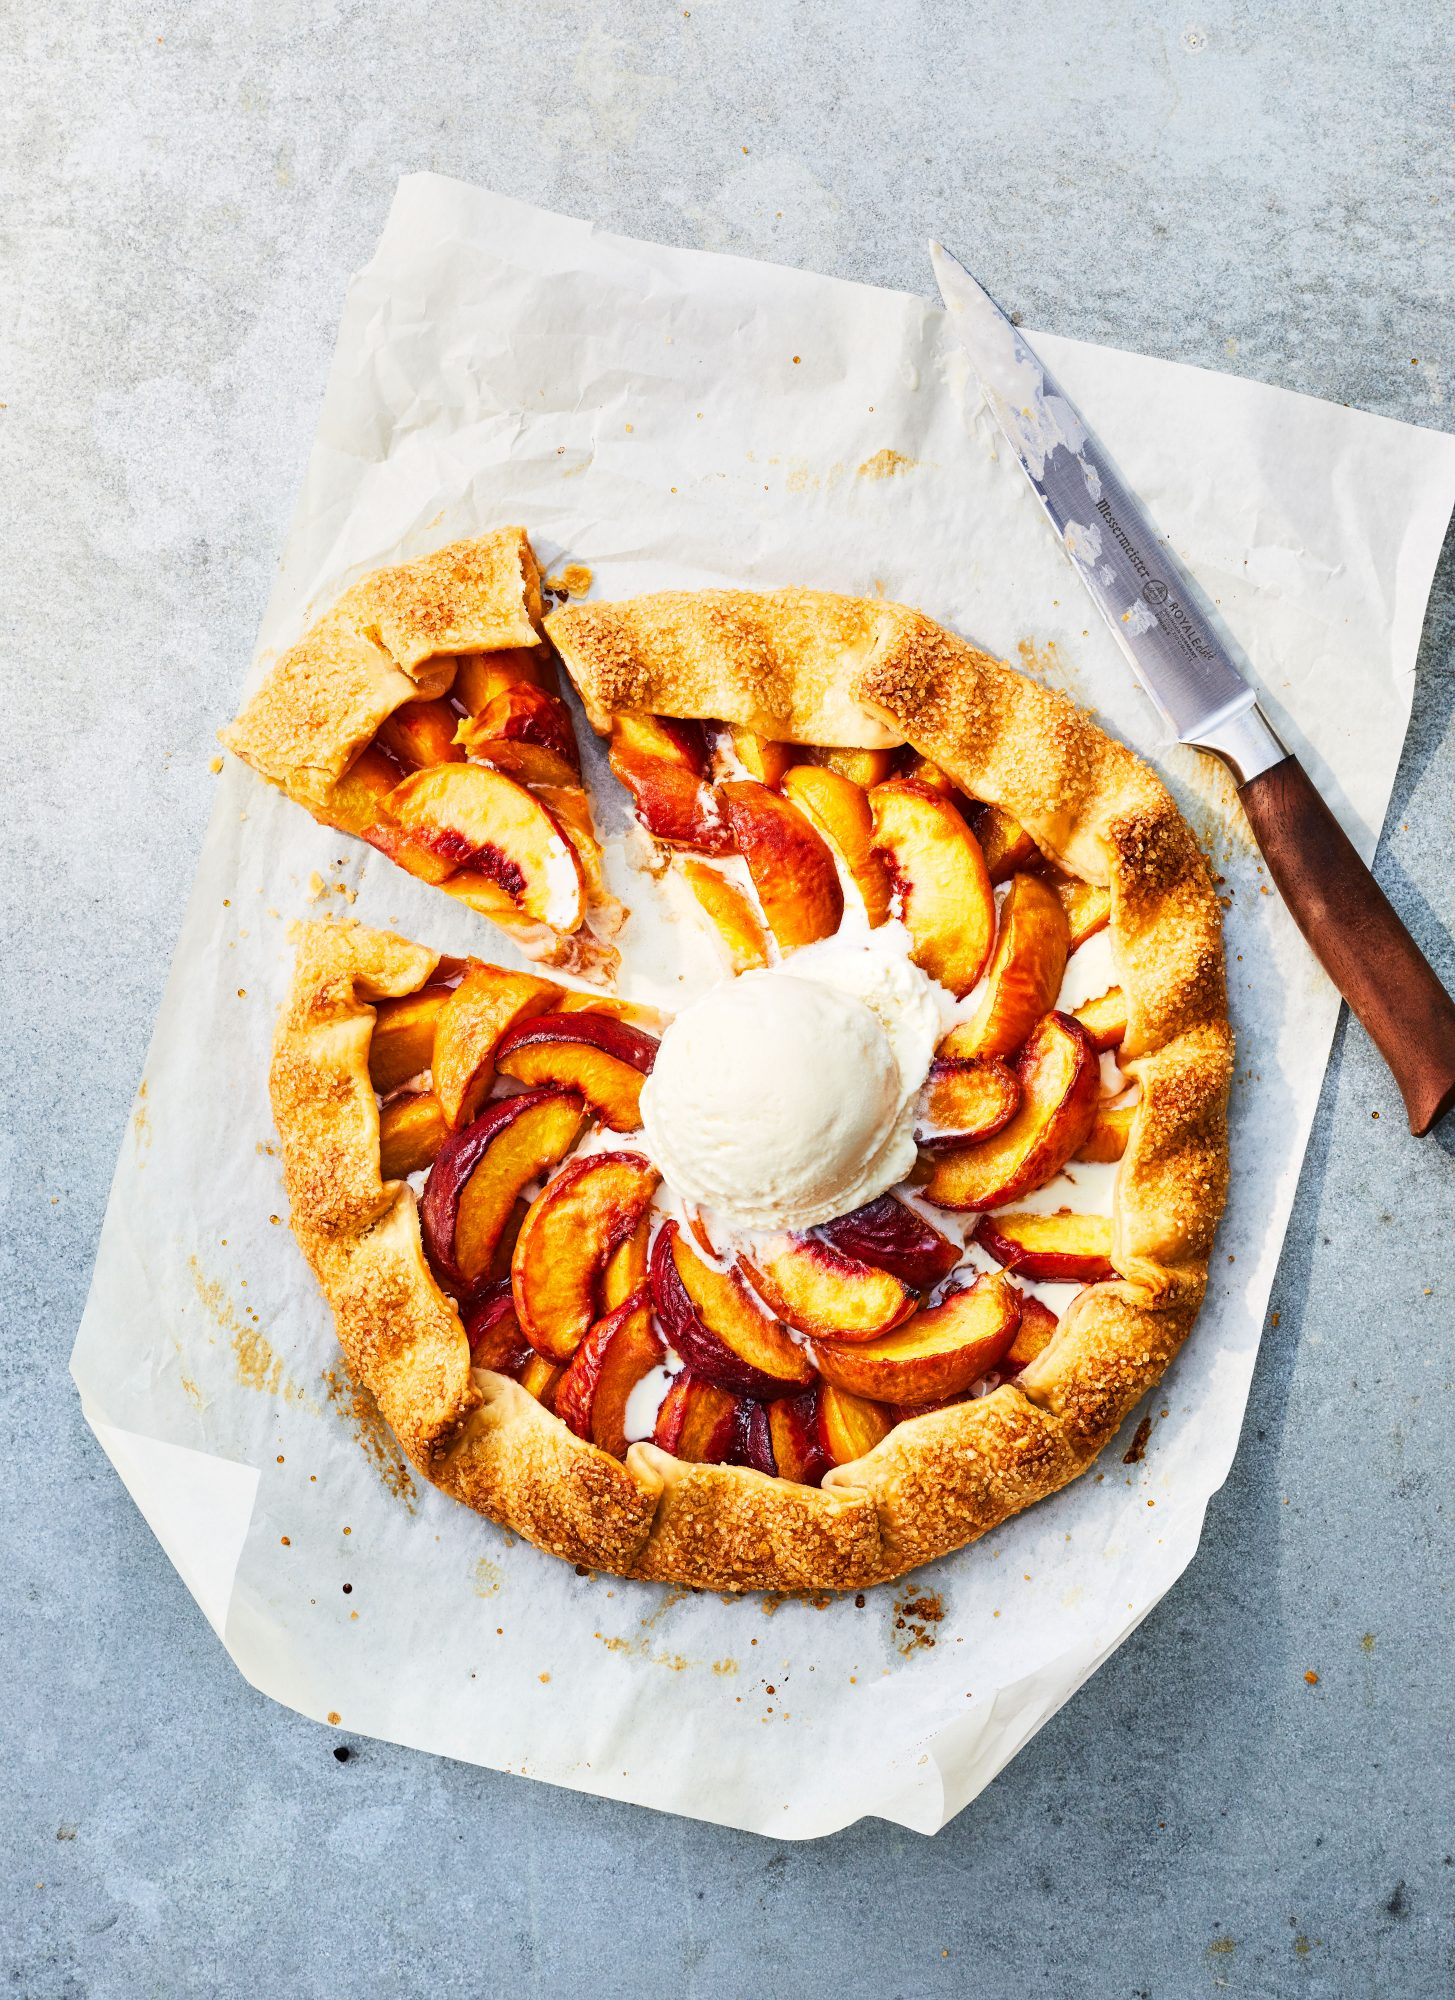 Gingered Peach Galette